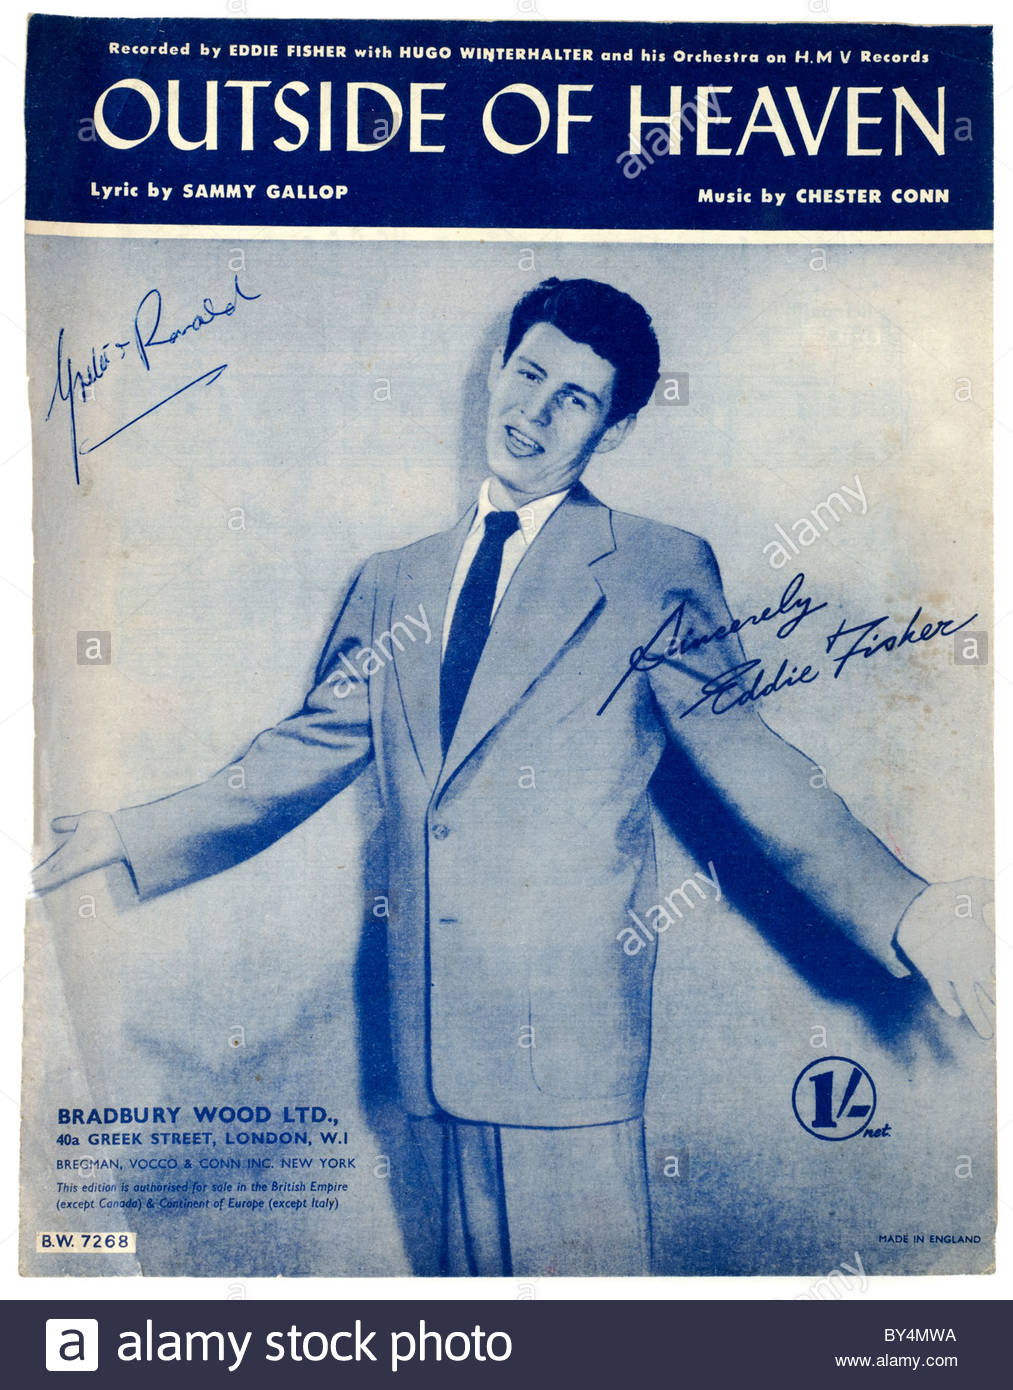 Old Sheet music score front cover titled